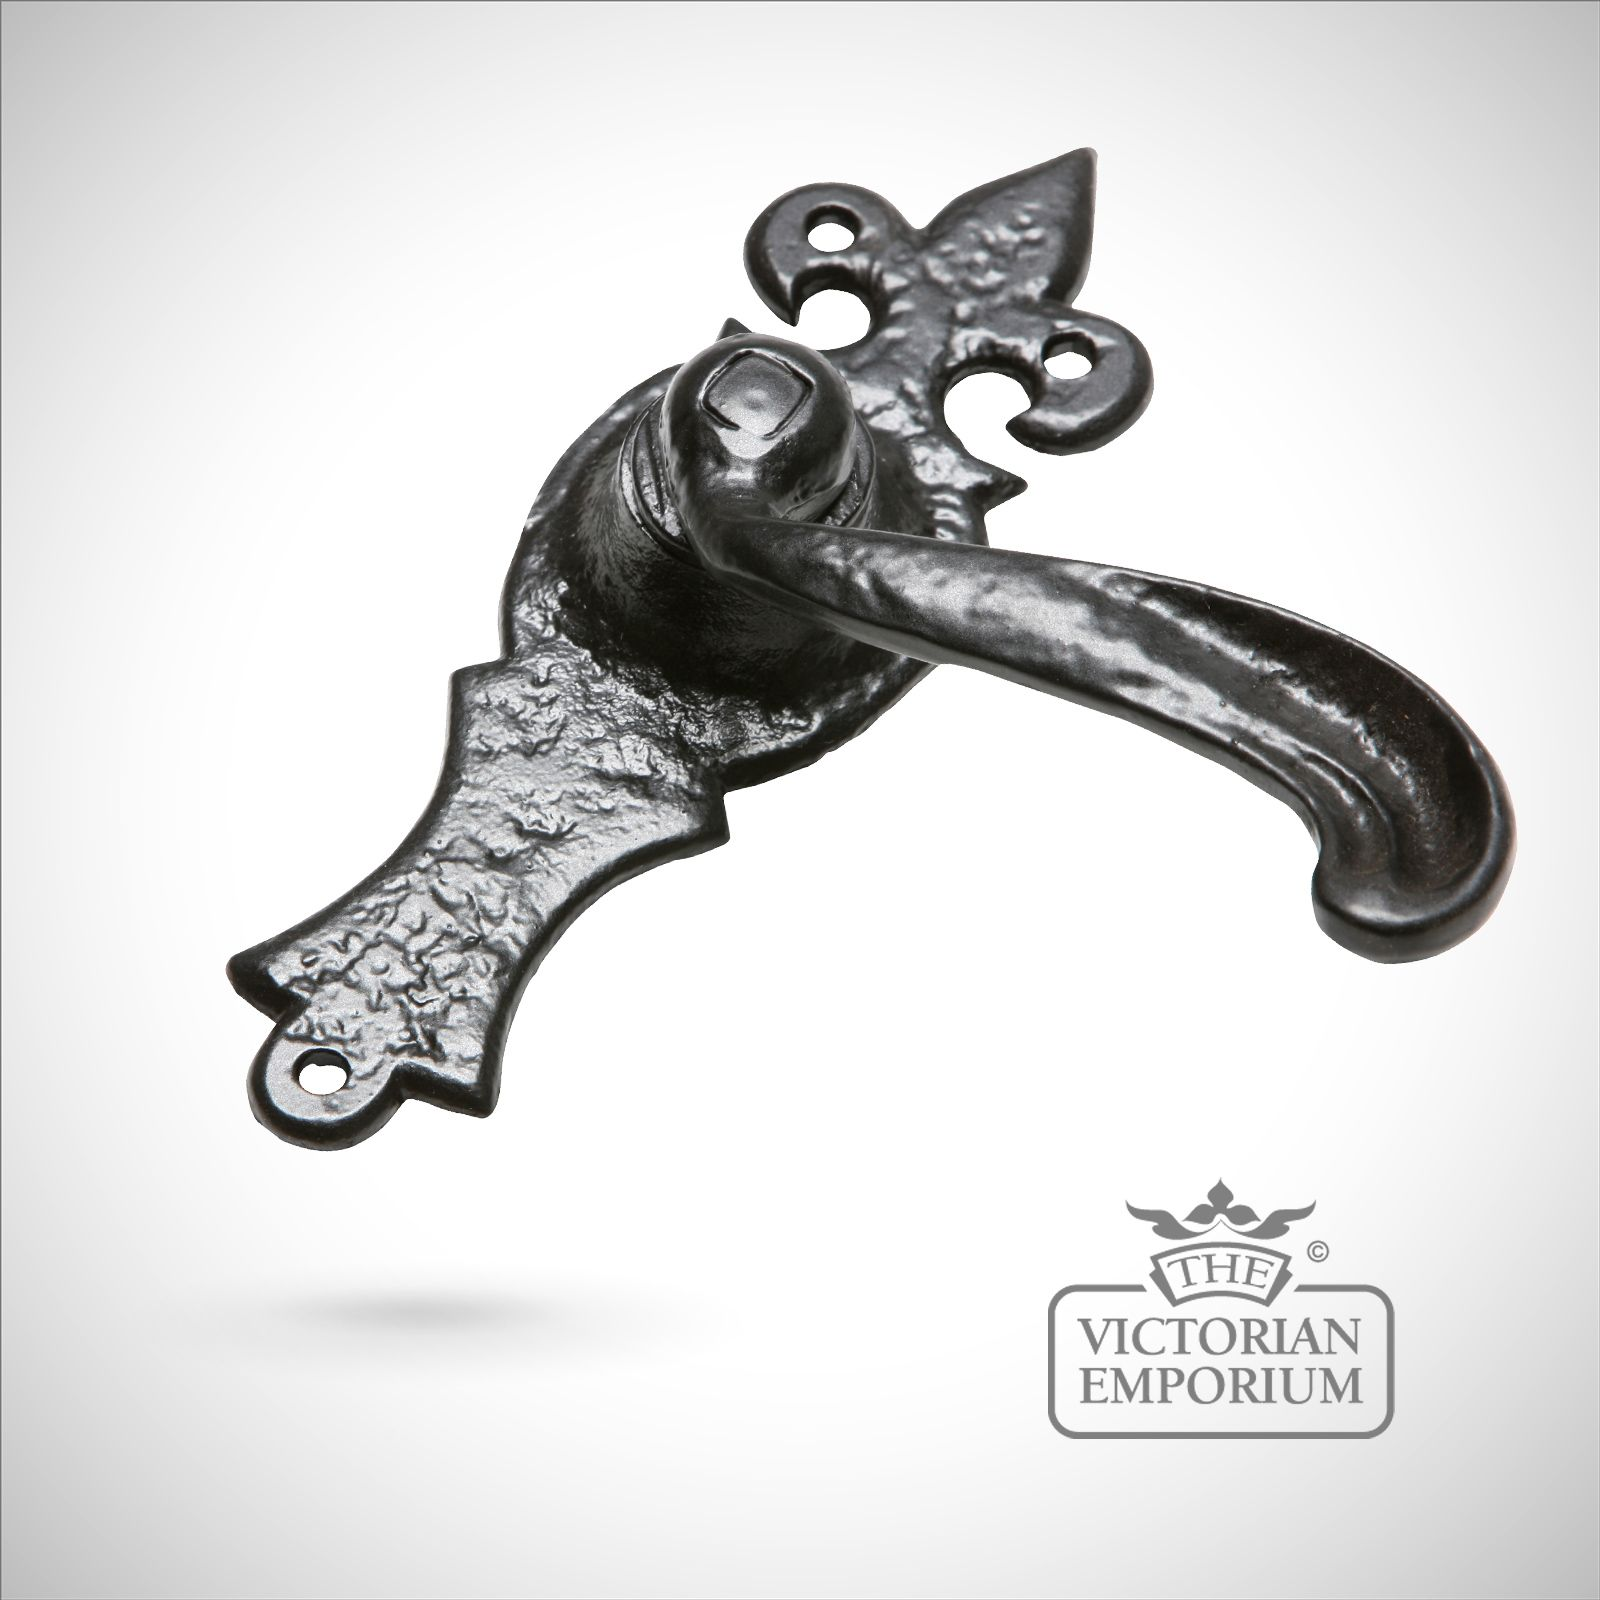 Old Fashion Lever : Black iron handcrafted ornate lever door handle style